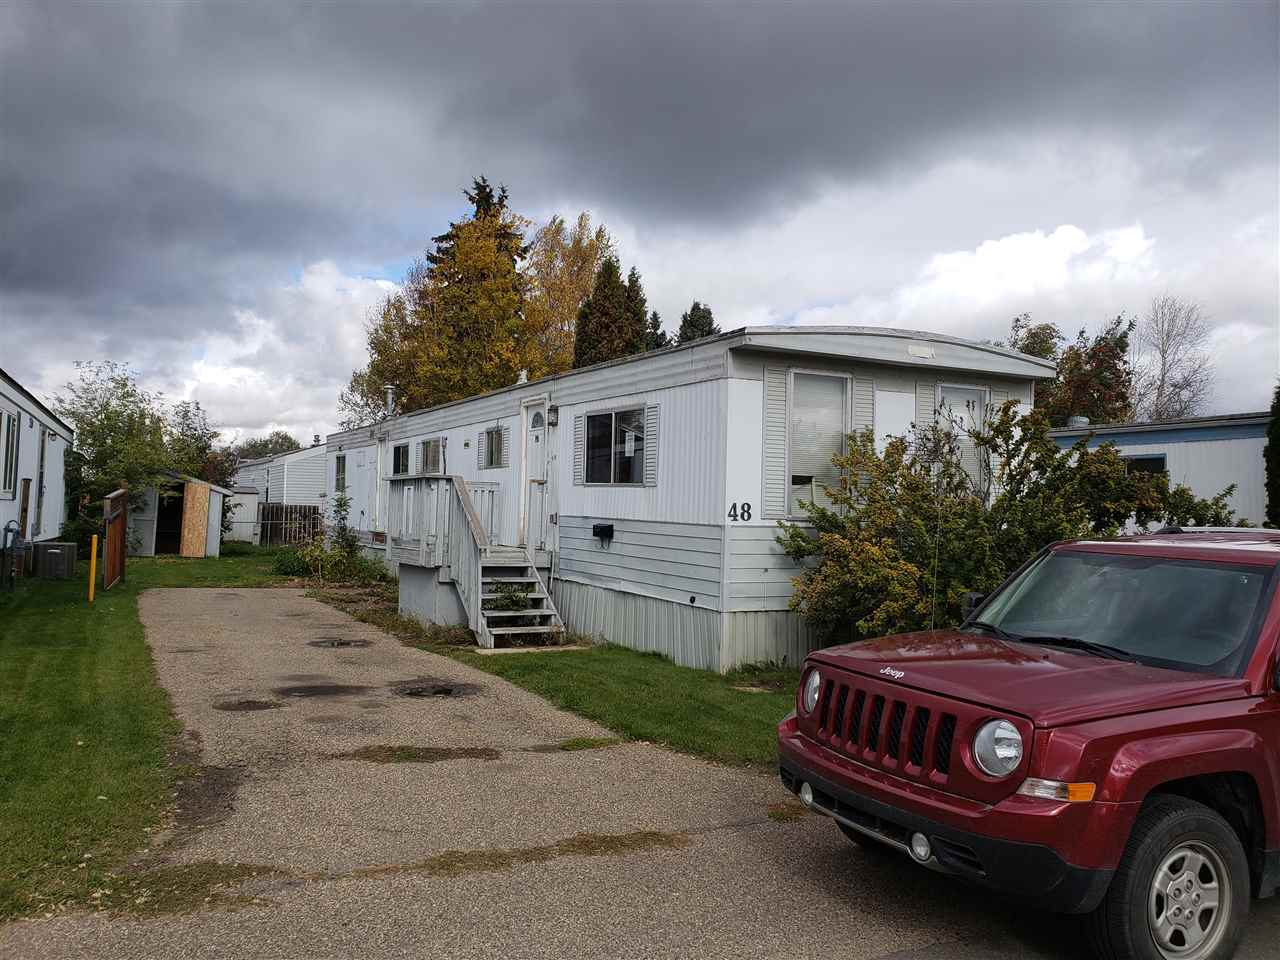 48 WINTERBURN ROAD Road, 2 bed, 1 bath, at $15,000